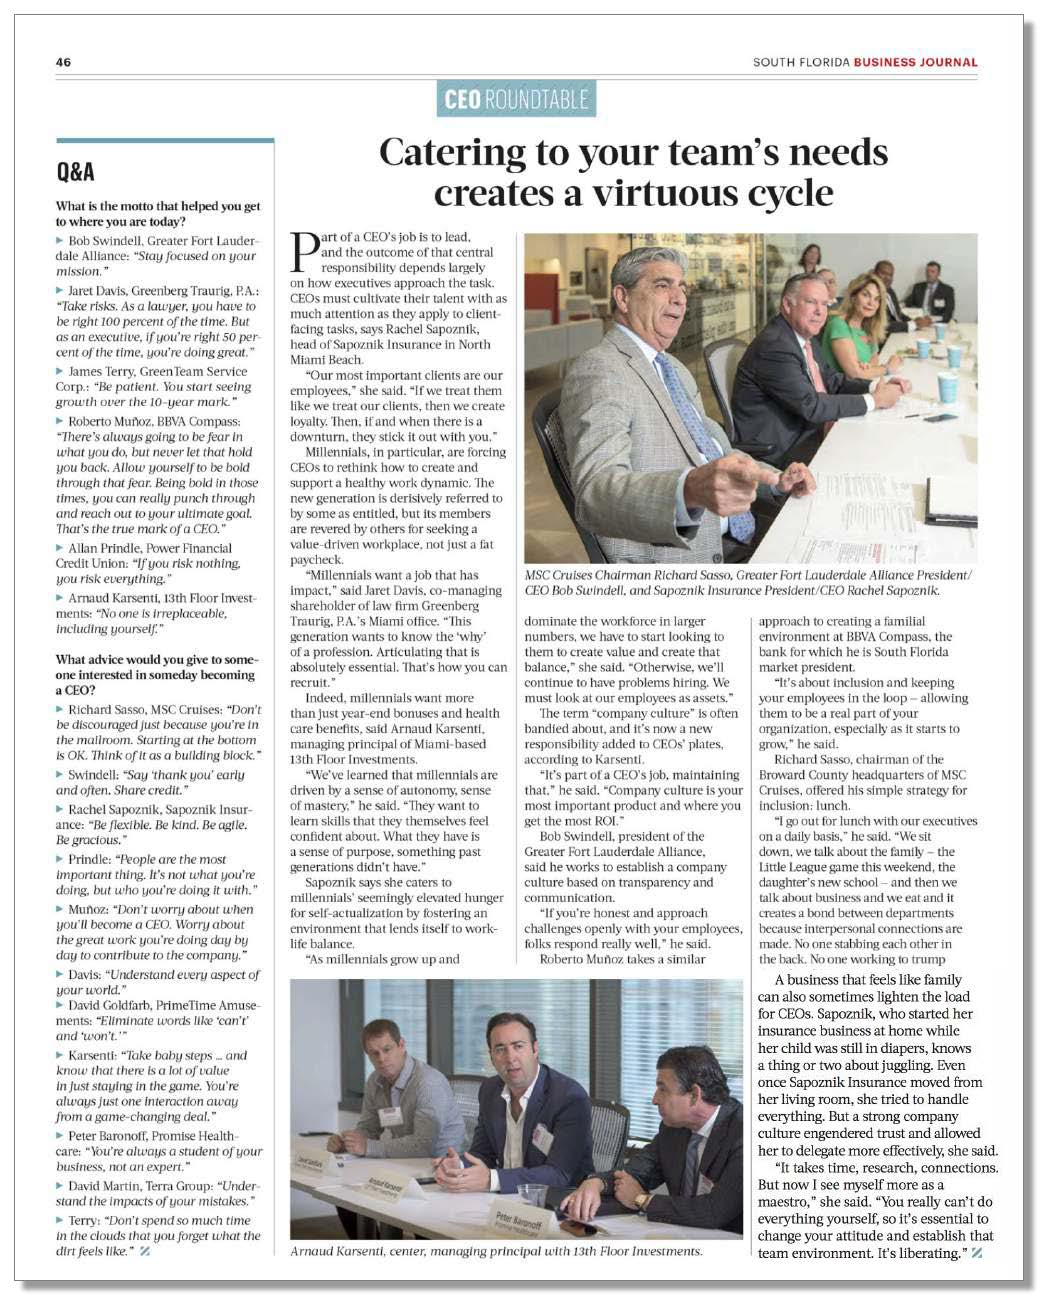 South-Florida-Business-Journal-Sapoznik-Insurance-South-Floridas-Top-Executives-Share-Insights-on-the-Future-of-Business-3-17-17-V2_Page_4